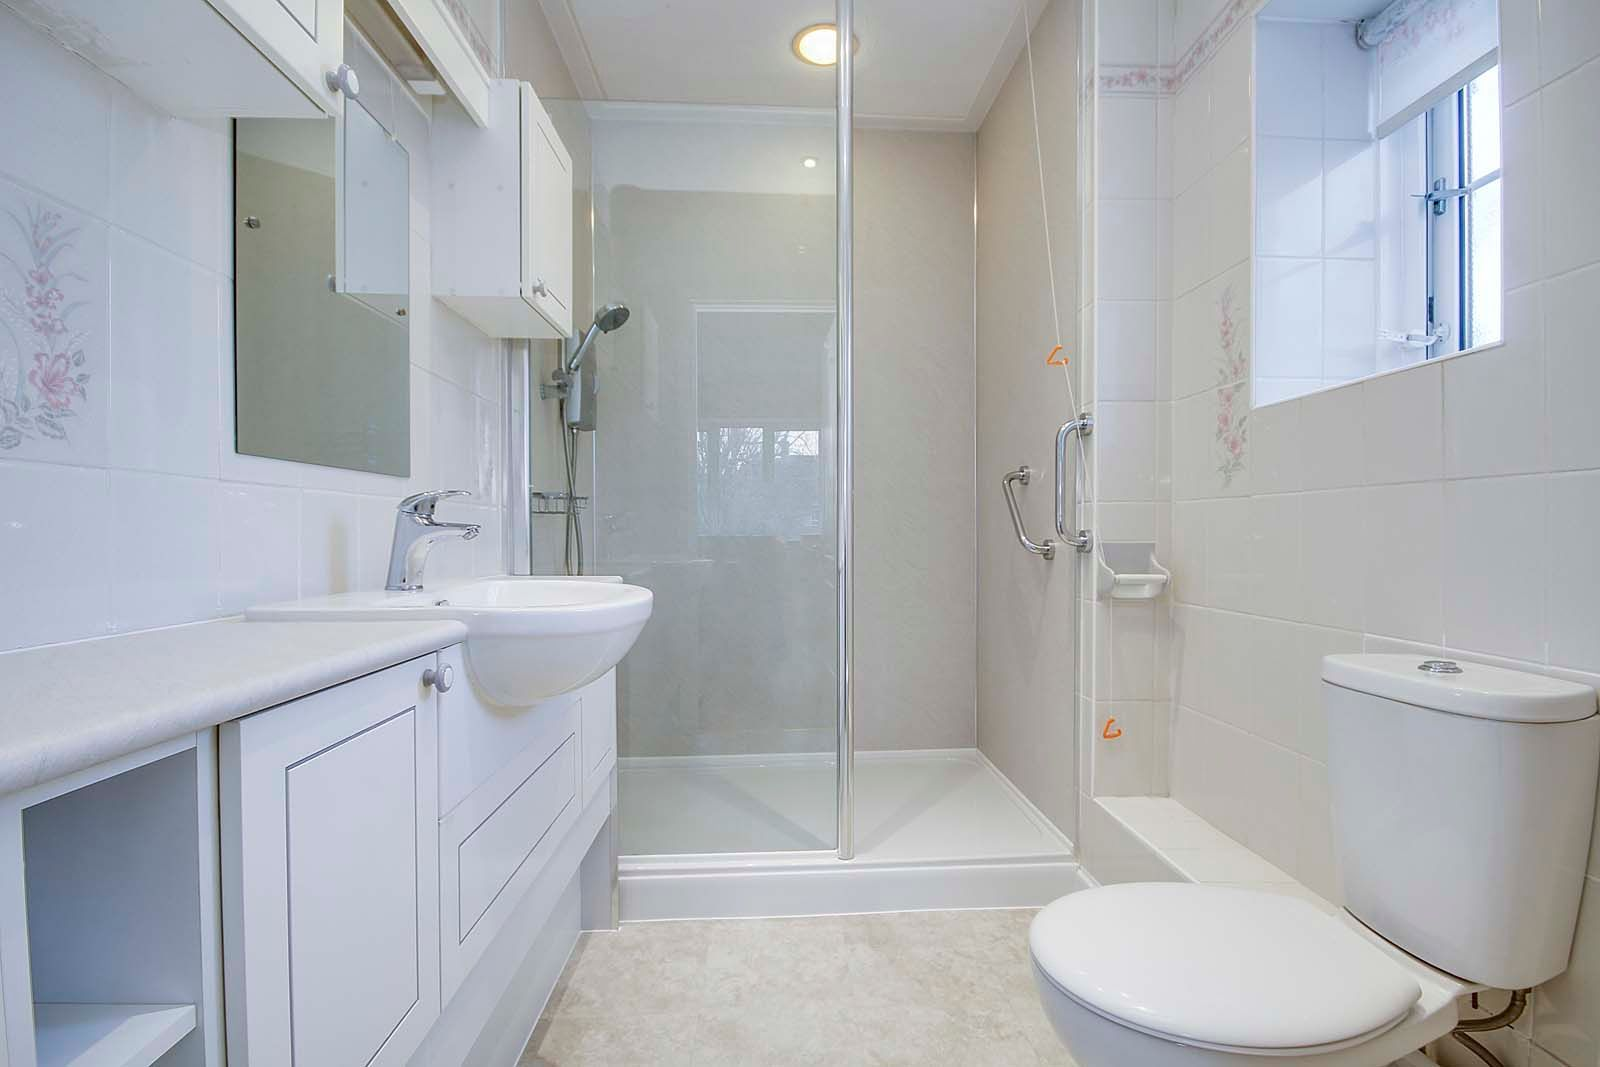 2 bed Apartment for sale in East Preston - En suite shower room (Property Image 4)